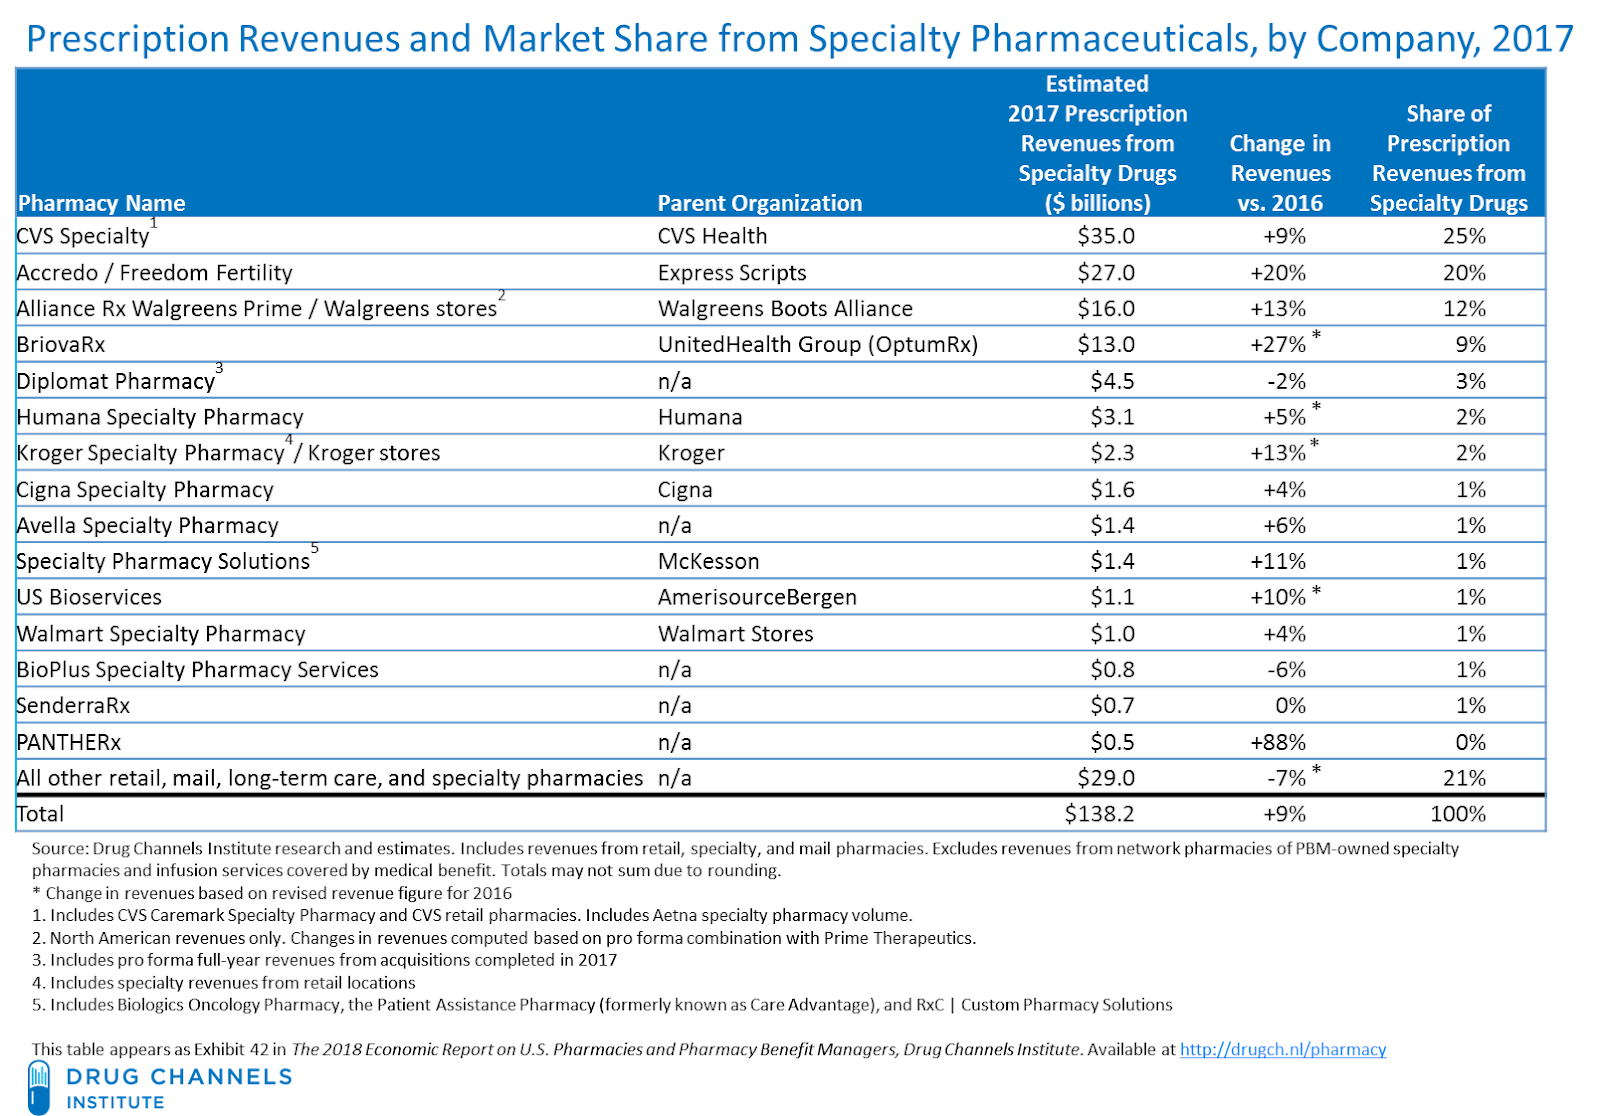 2a6a1f465a Total prescription dispensing revenues from specialty drugs at retail,  mail, long-term care, and specialty pharmacies reached $138 billion in 2017.